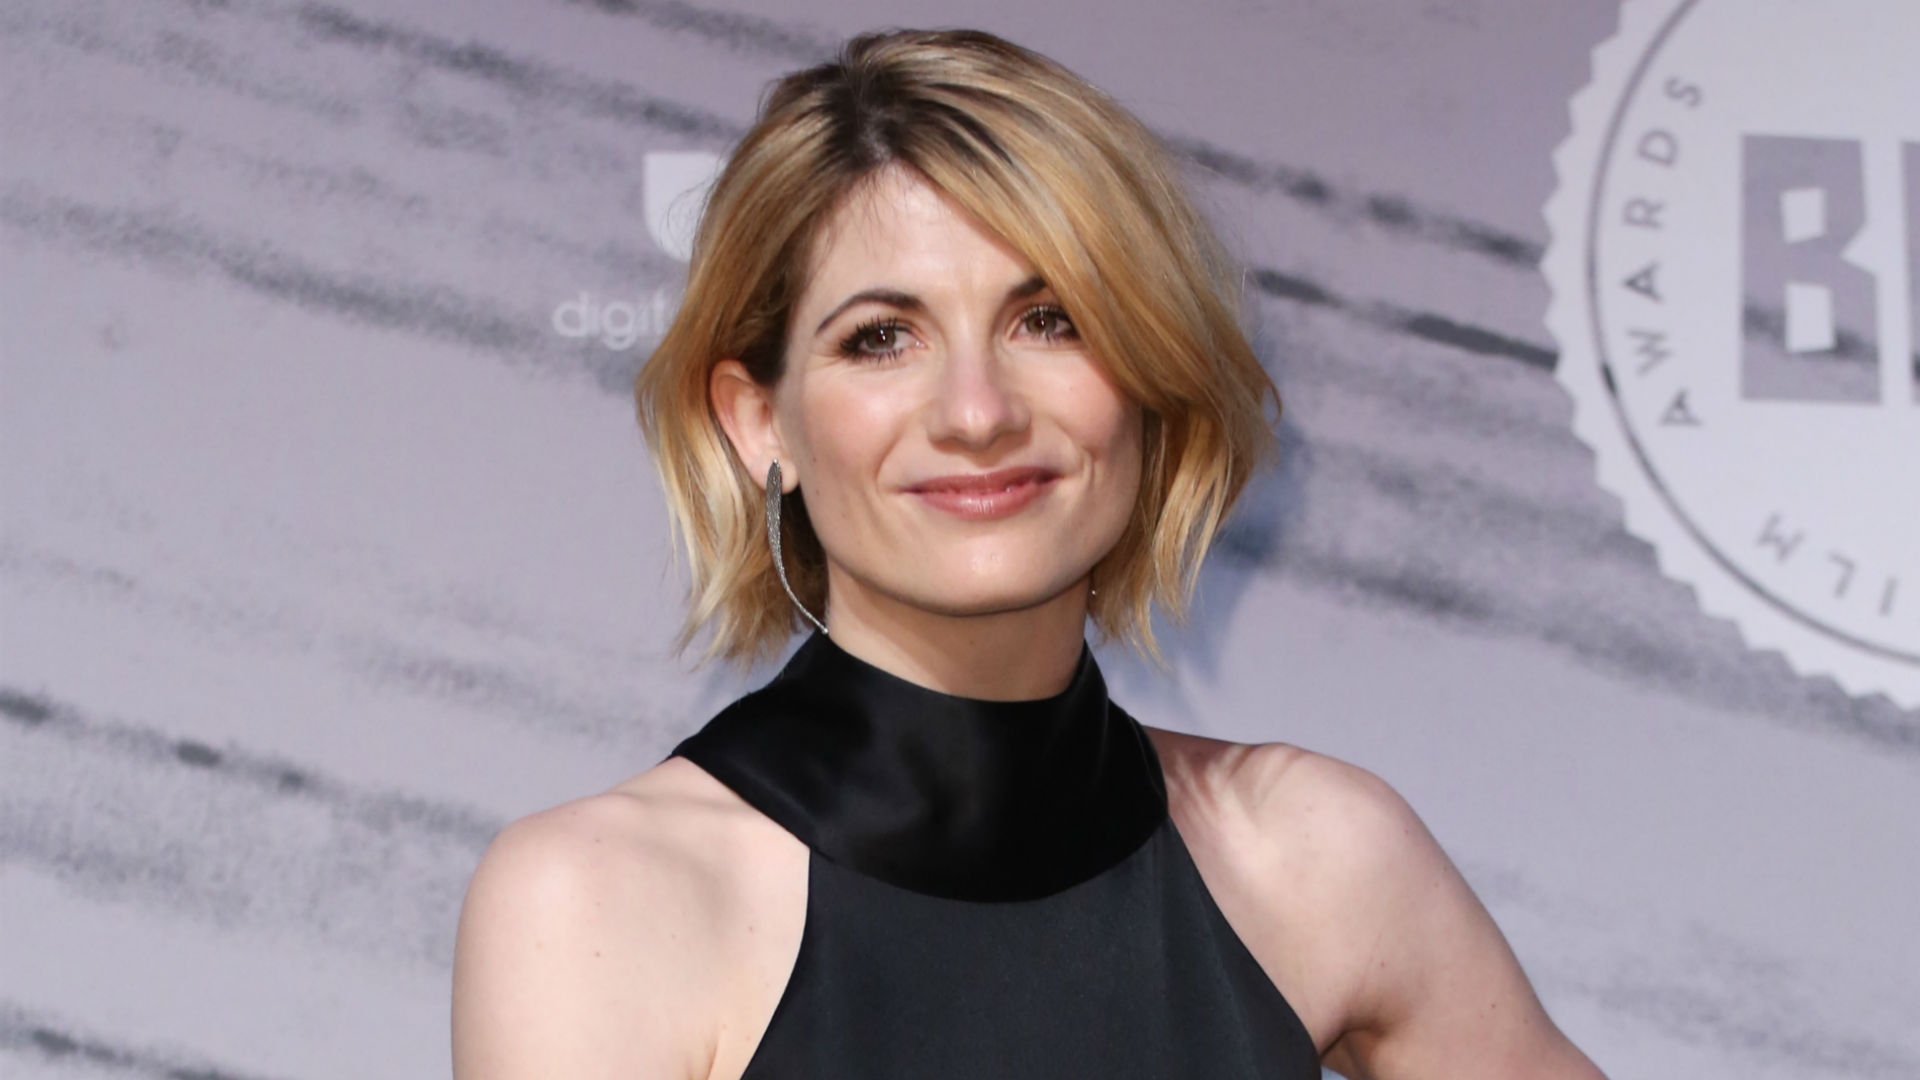 11 Things To Know About Jodie Whittaker The First Female Lead On